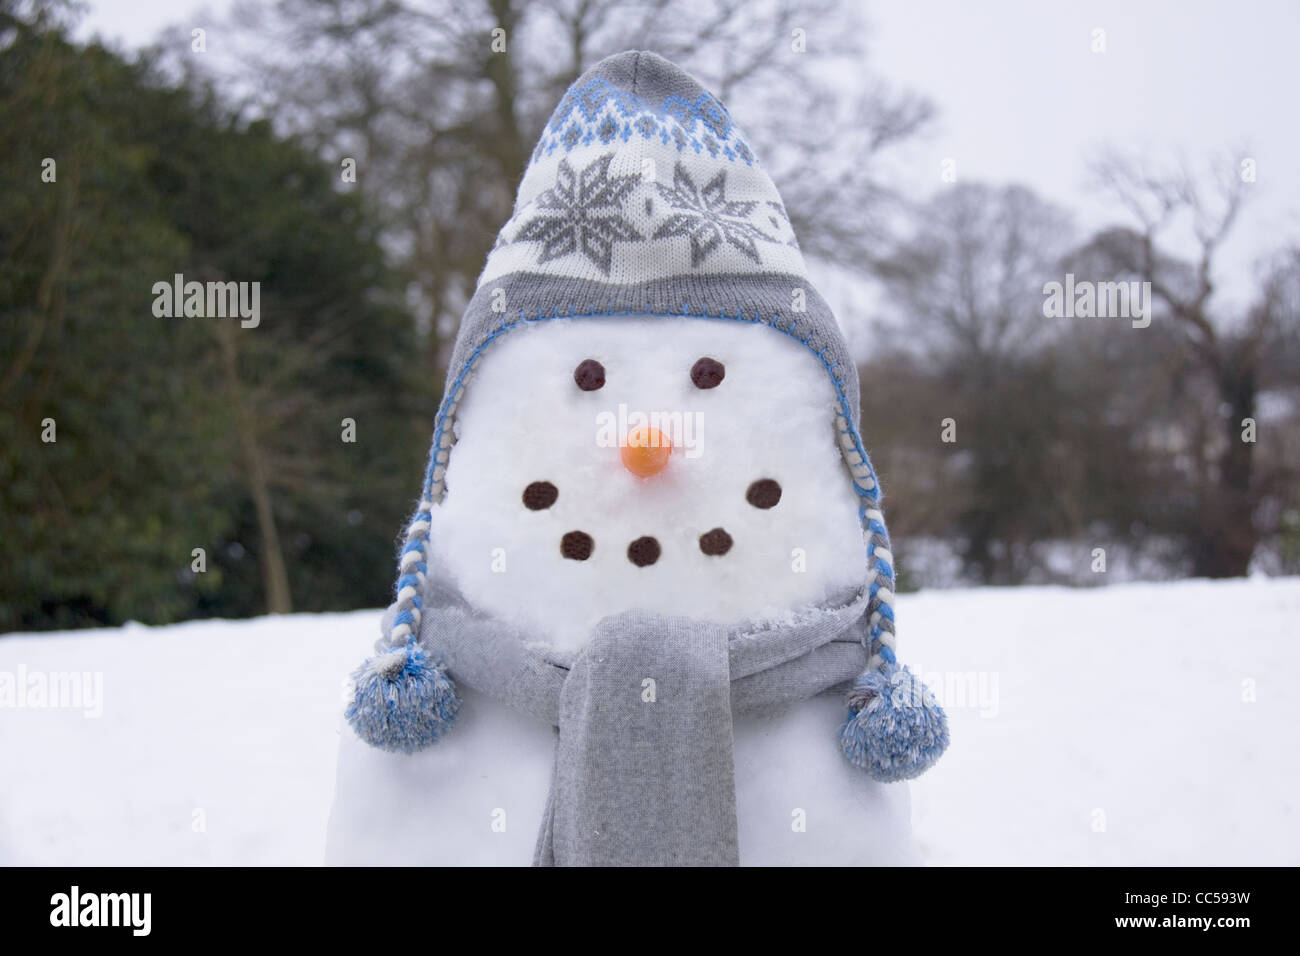 Snowman in a hat and scarf - Stock Image